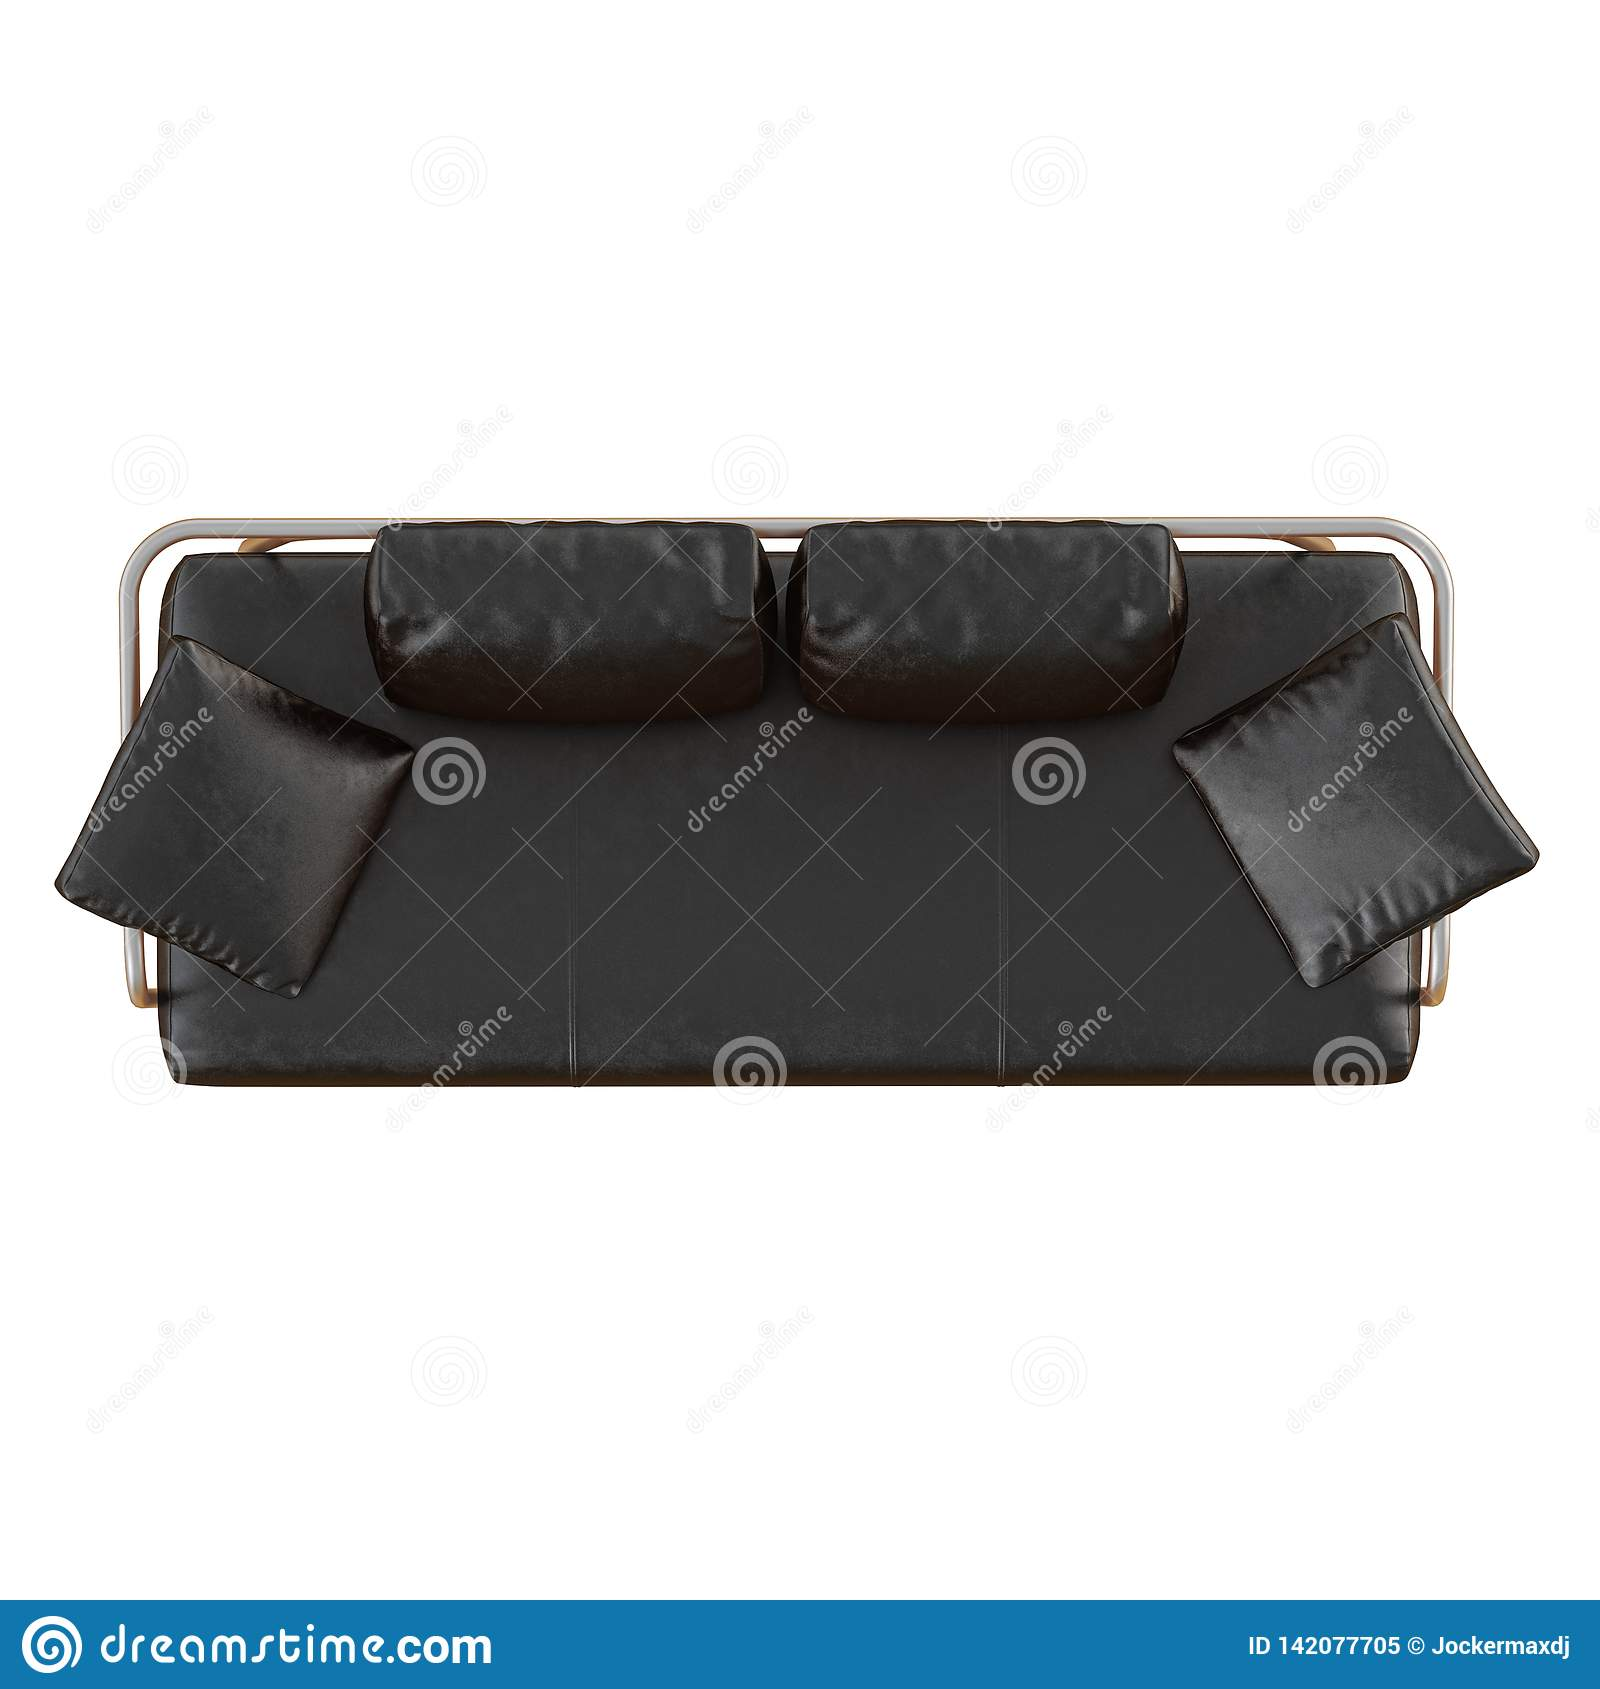 Incredible Black Leather Sofa With Pillows On A White Background 3D Squirreltailoven Fun Painted Chair Ideas Images Squirreltailovenorg